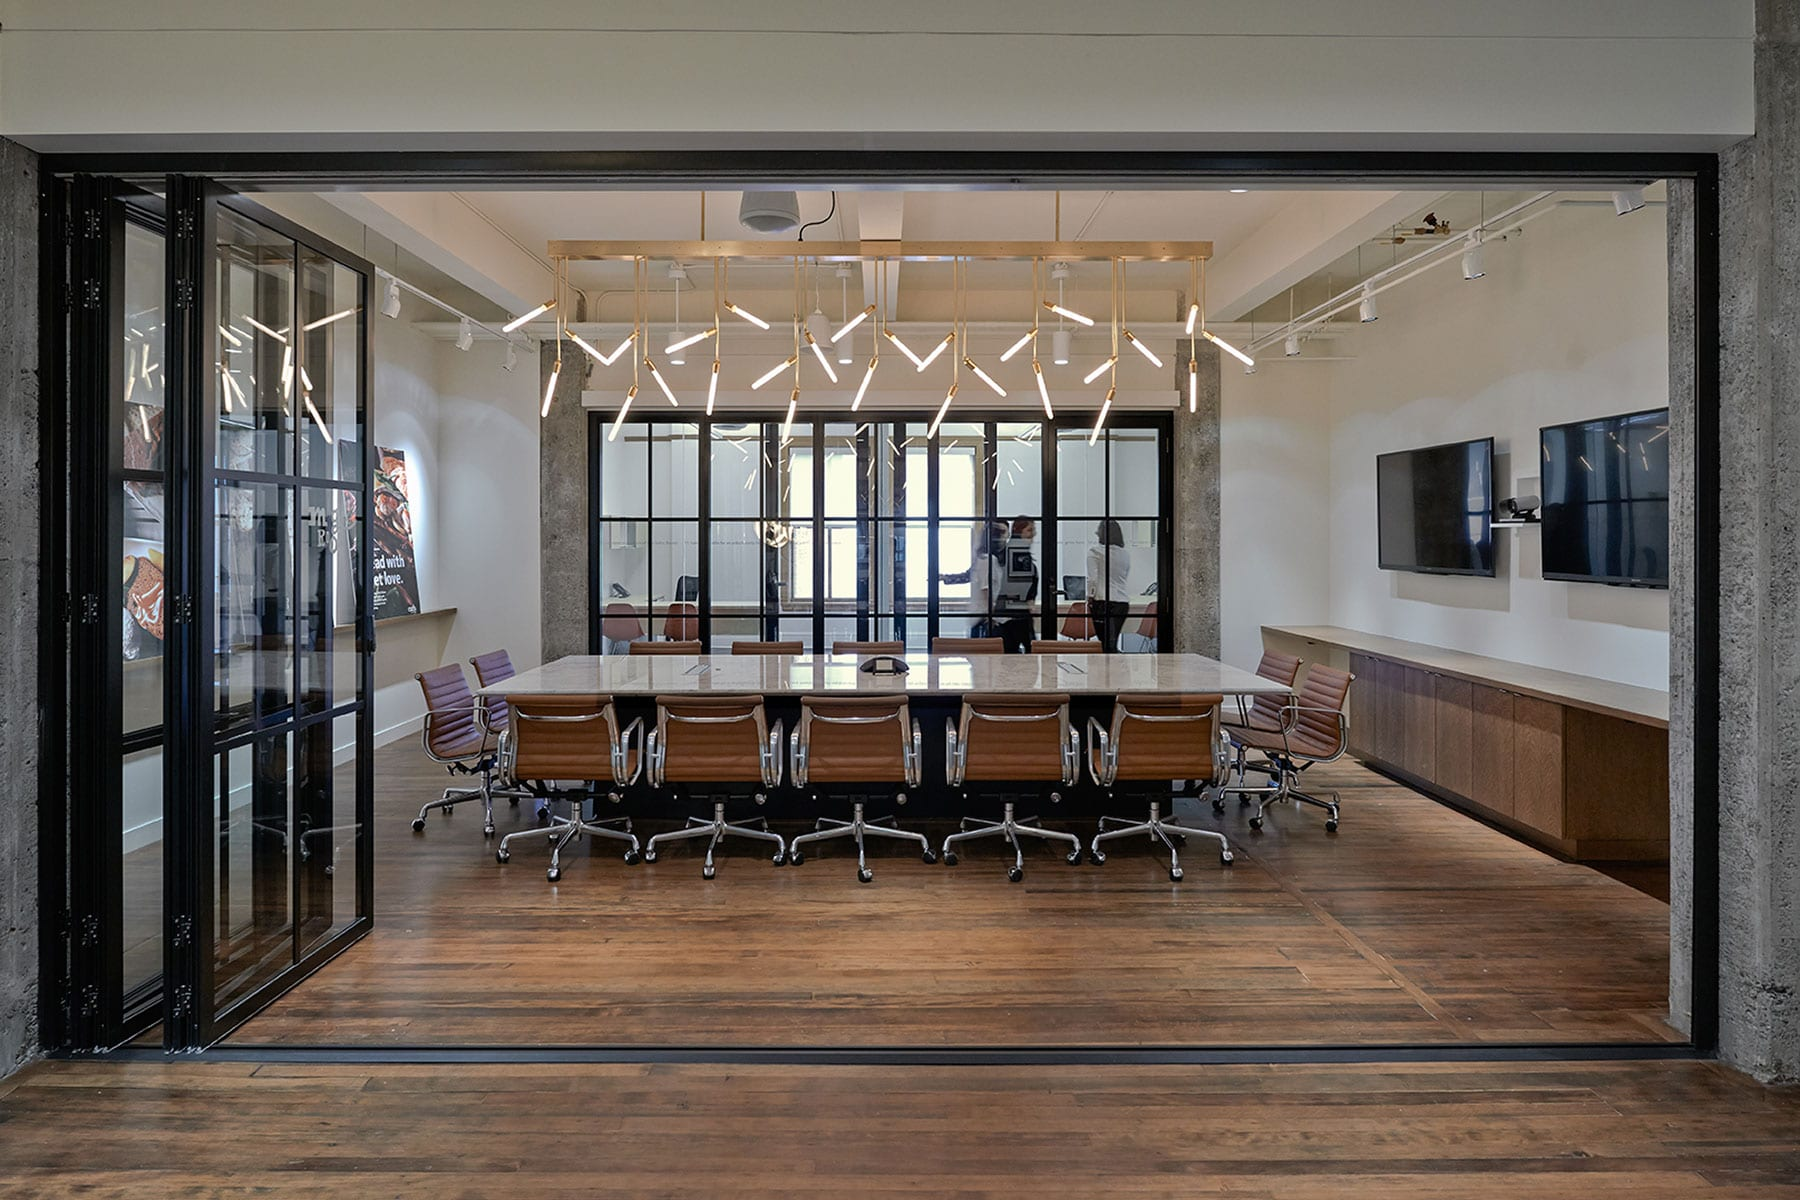 Earls' Large boardroom with operable glass wall partitions